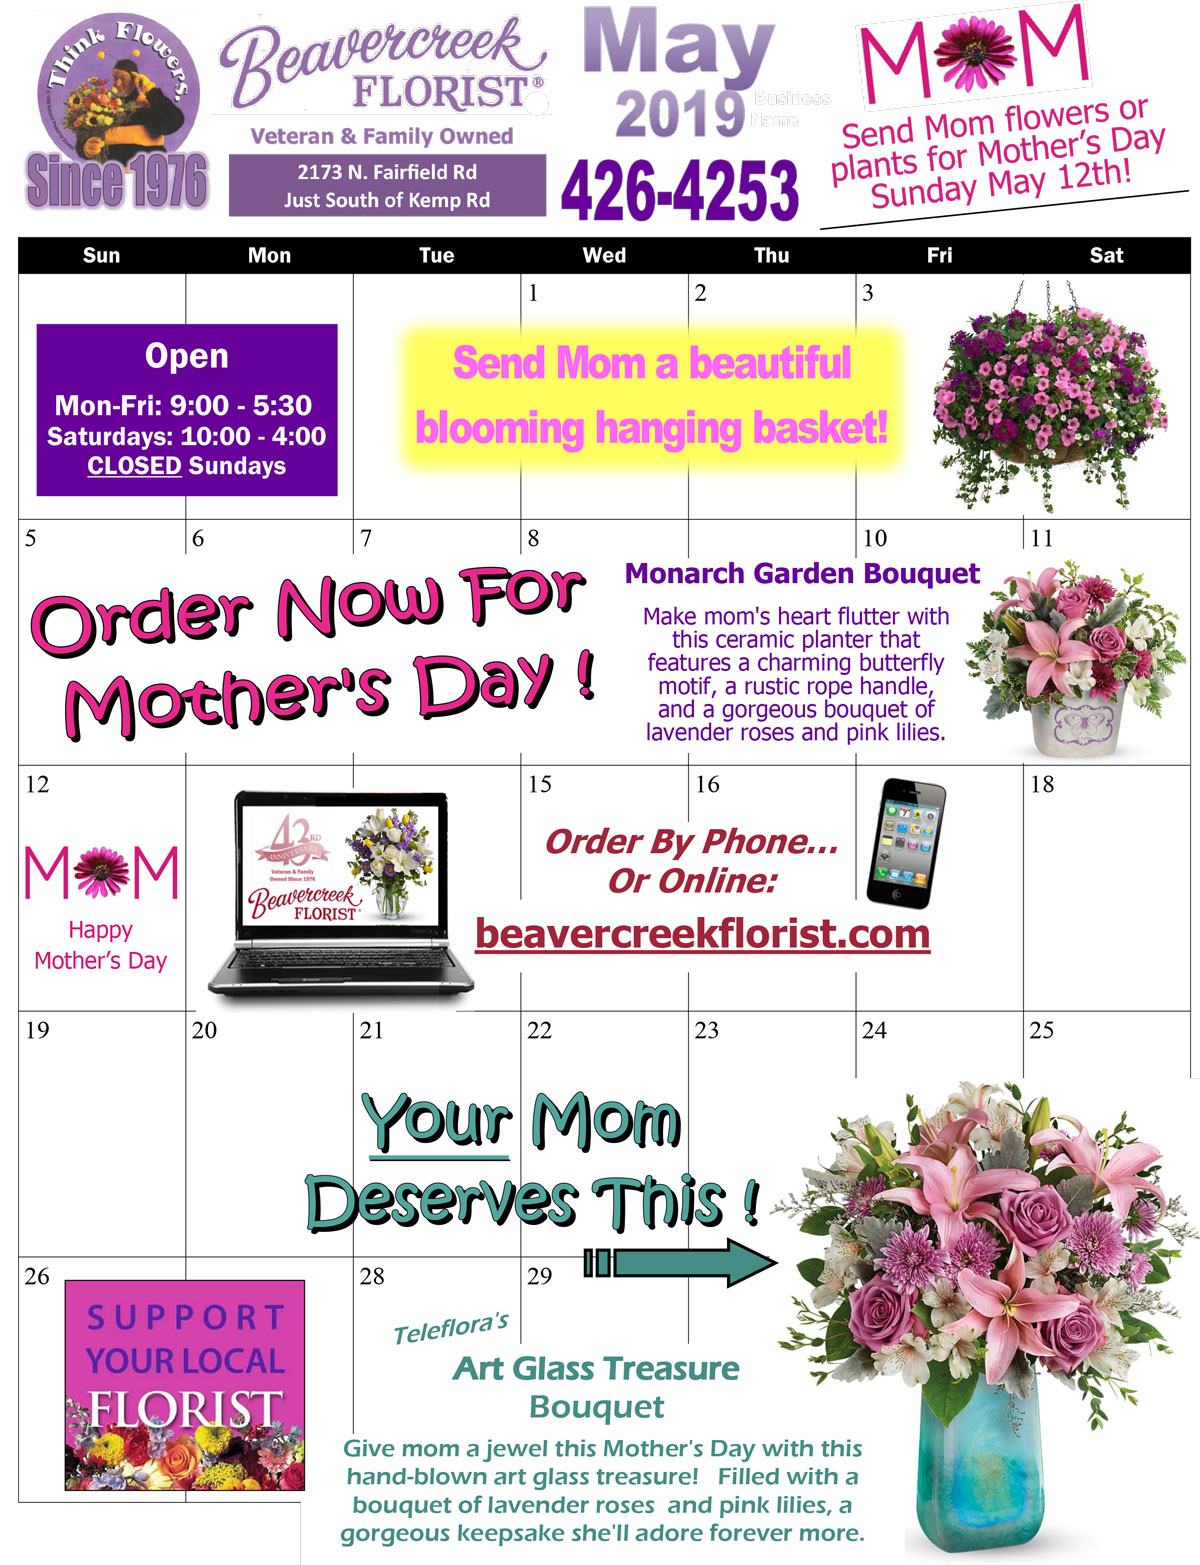 May Events from Beavercreek Florist